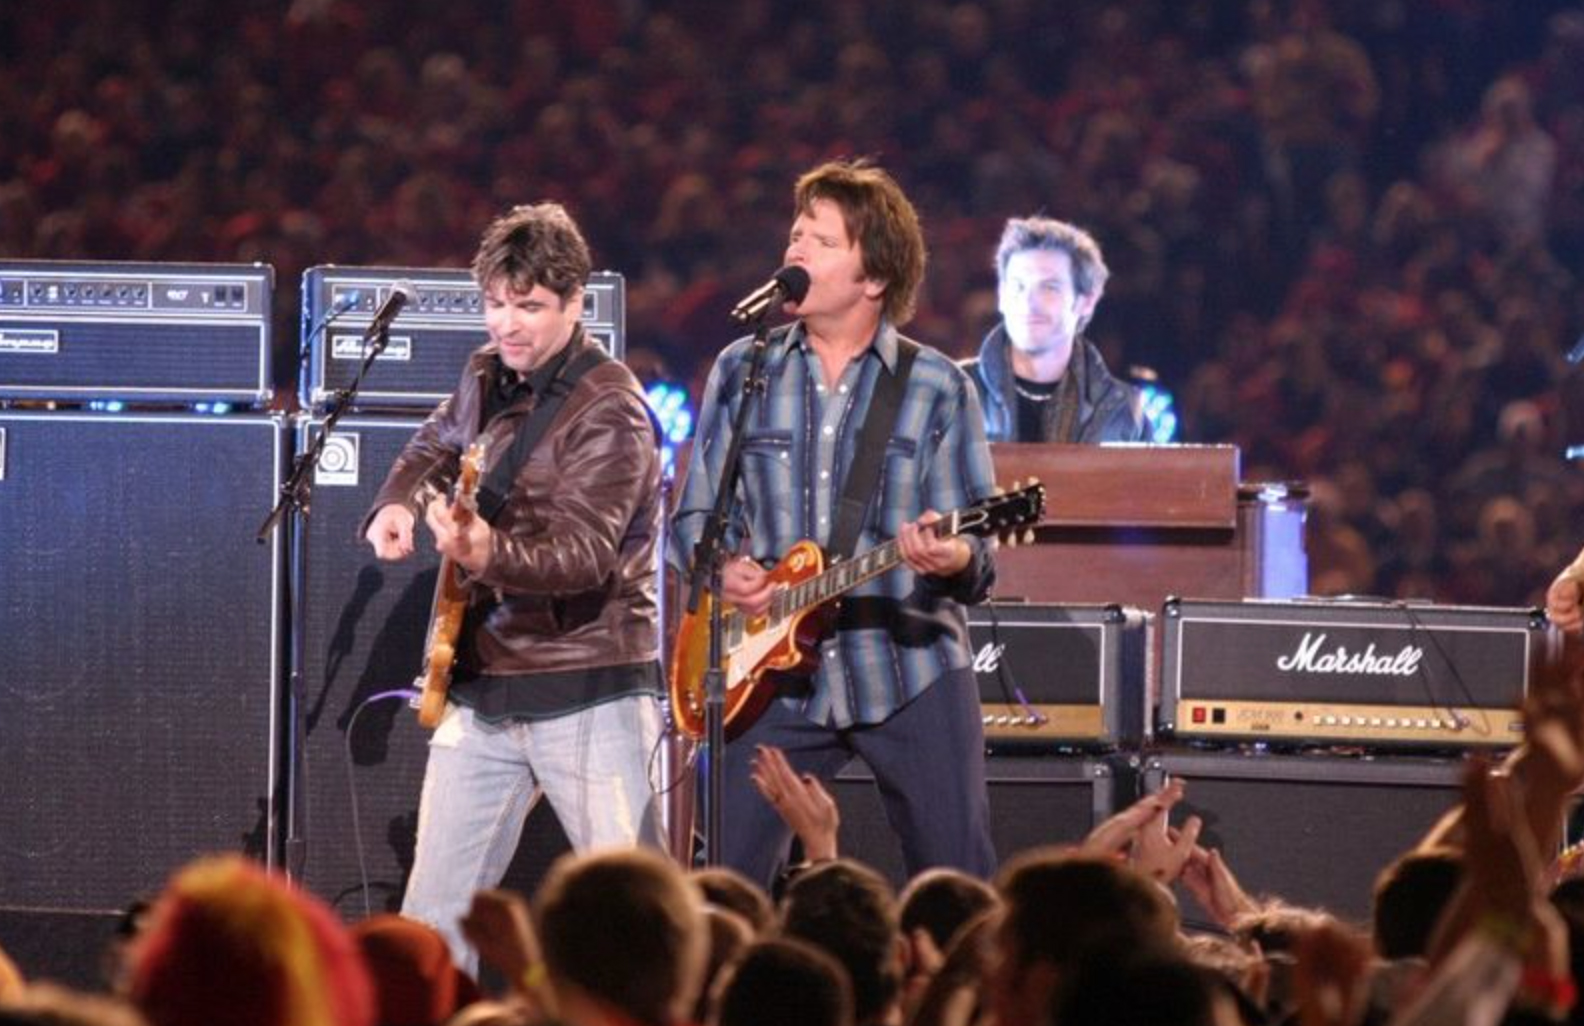 Music legend Fogerty to serve as grand marshal for Kobalt 400 at LVMS